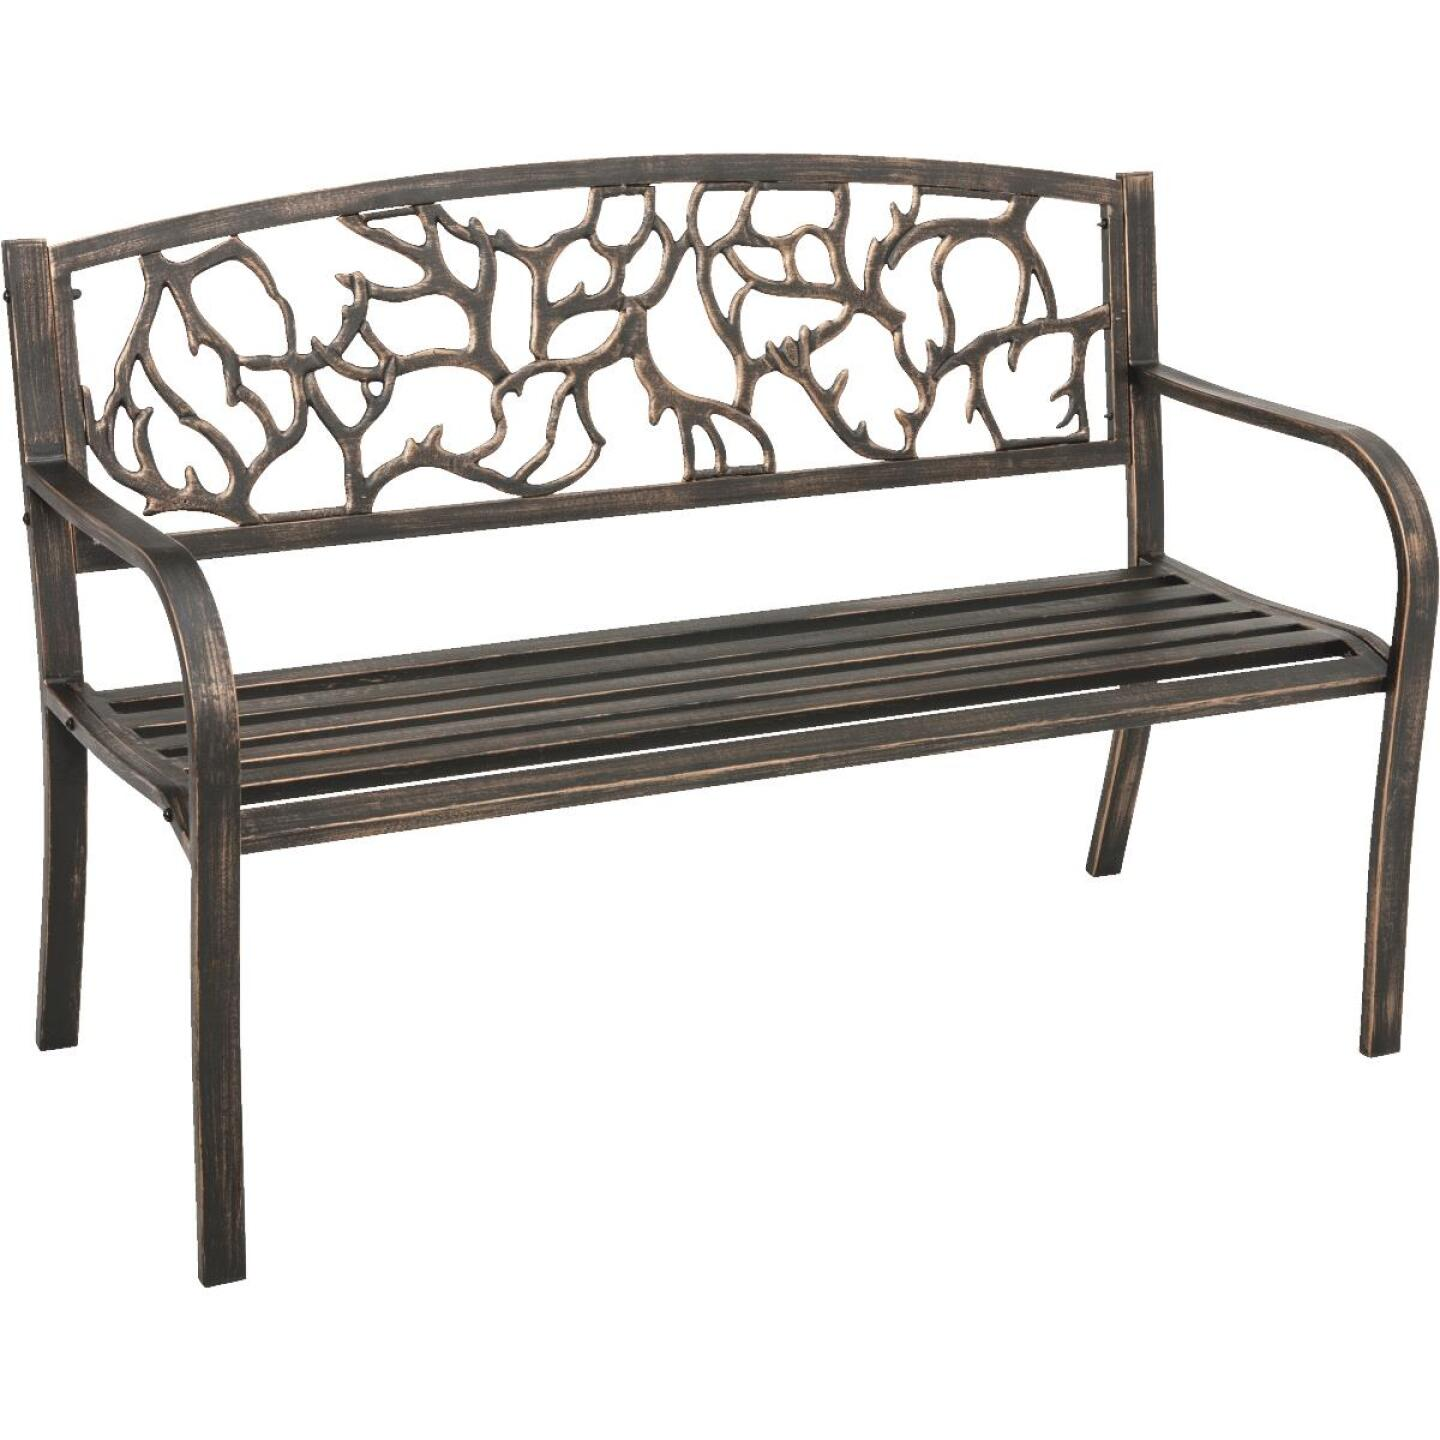 Outdoor Expressions Steel Branch Bench Image 1